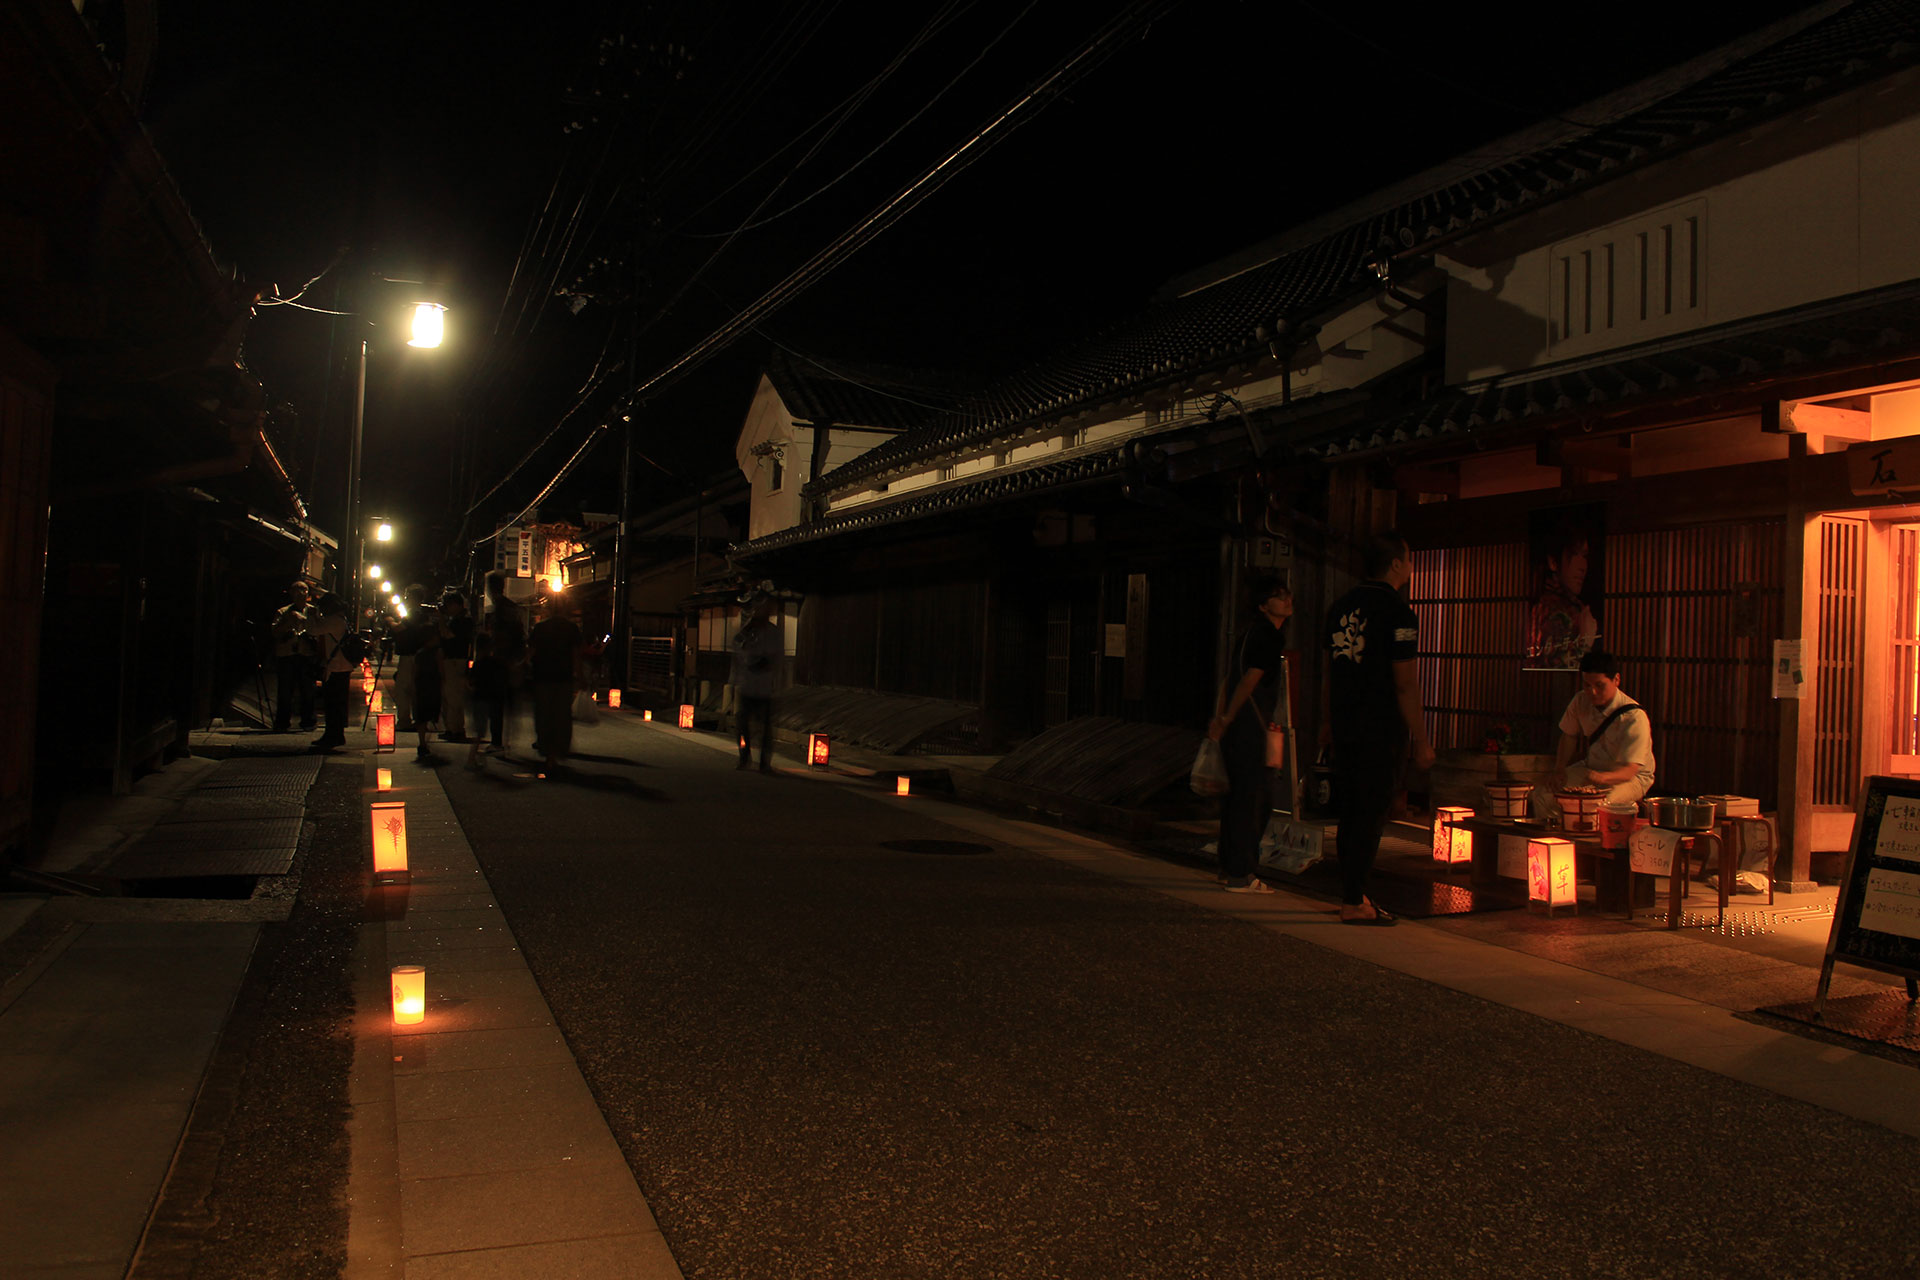 Illumination at Uda-Matsuyama